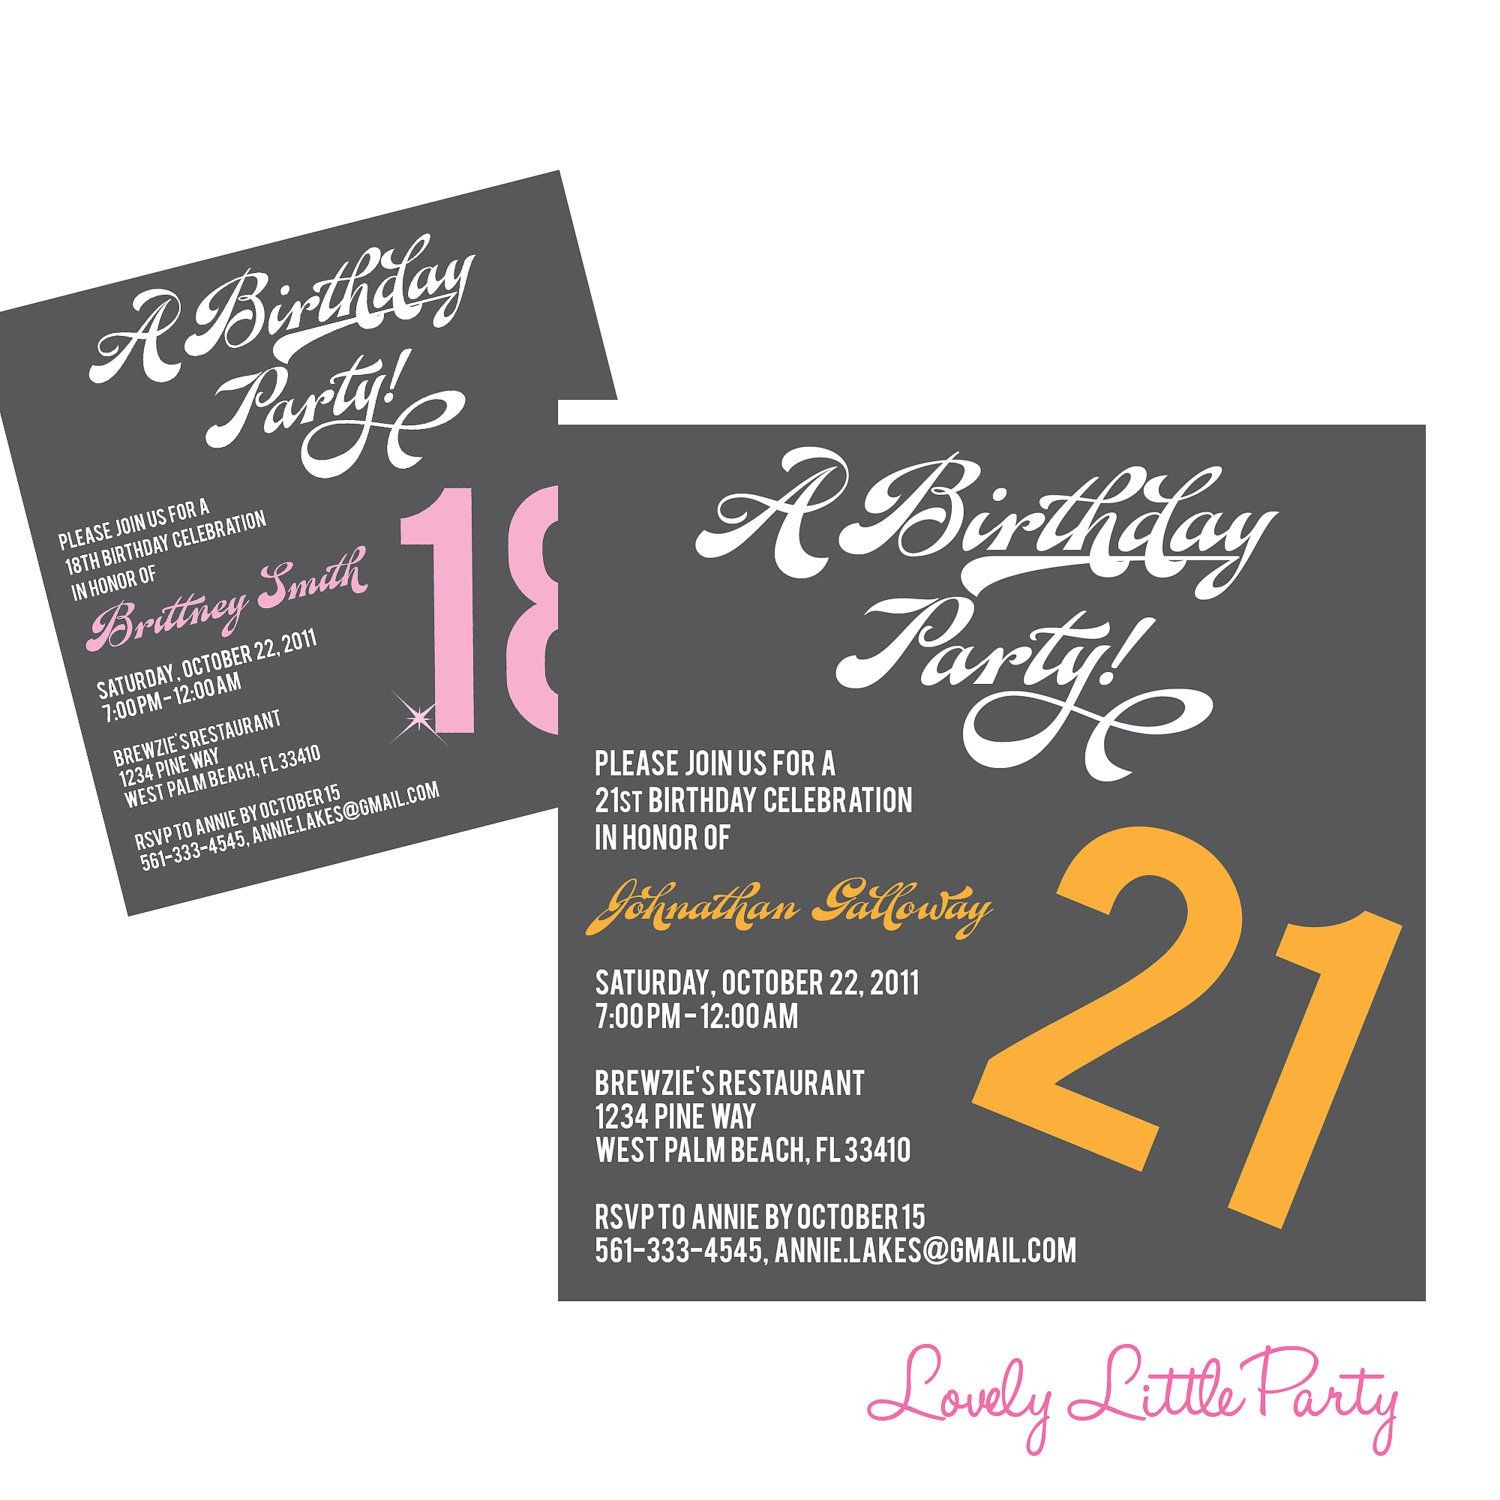 invitation letter for birthday debut ; invitation-sample-for-debut-valid-18-birthday-invitation-templates-18th-birthday-invitation-of-invitation-sample-for-debut